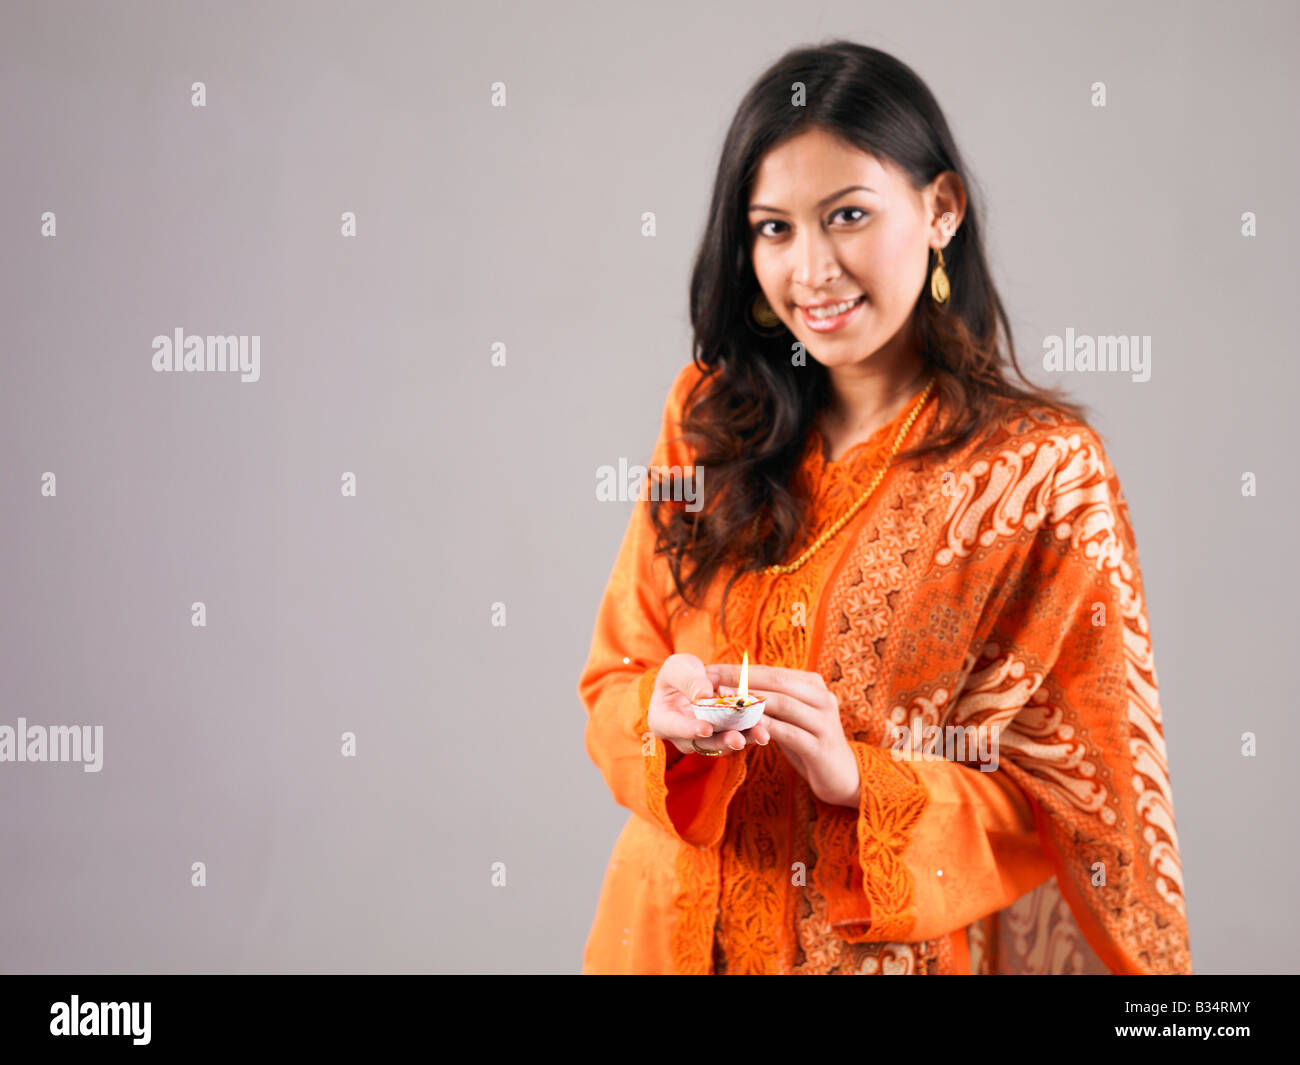 A malay lady holding oil lamp Stock Photo, Royalty Free Image ... for Girl Holding Lamp  568zmd